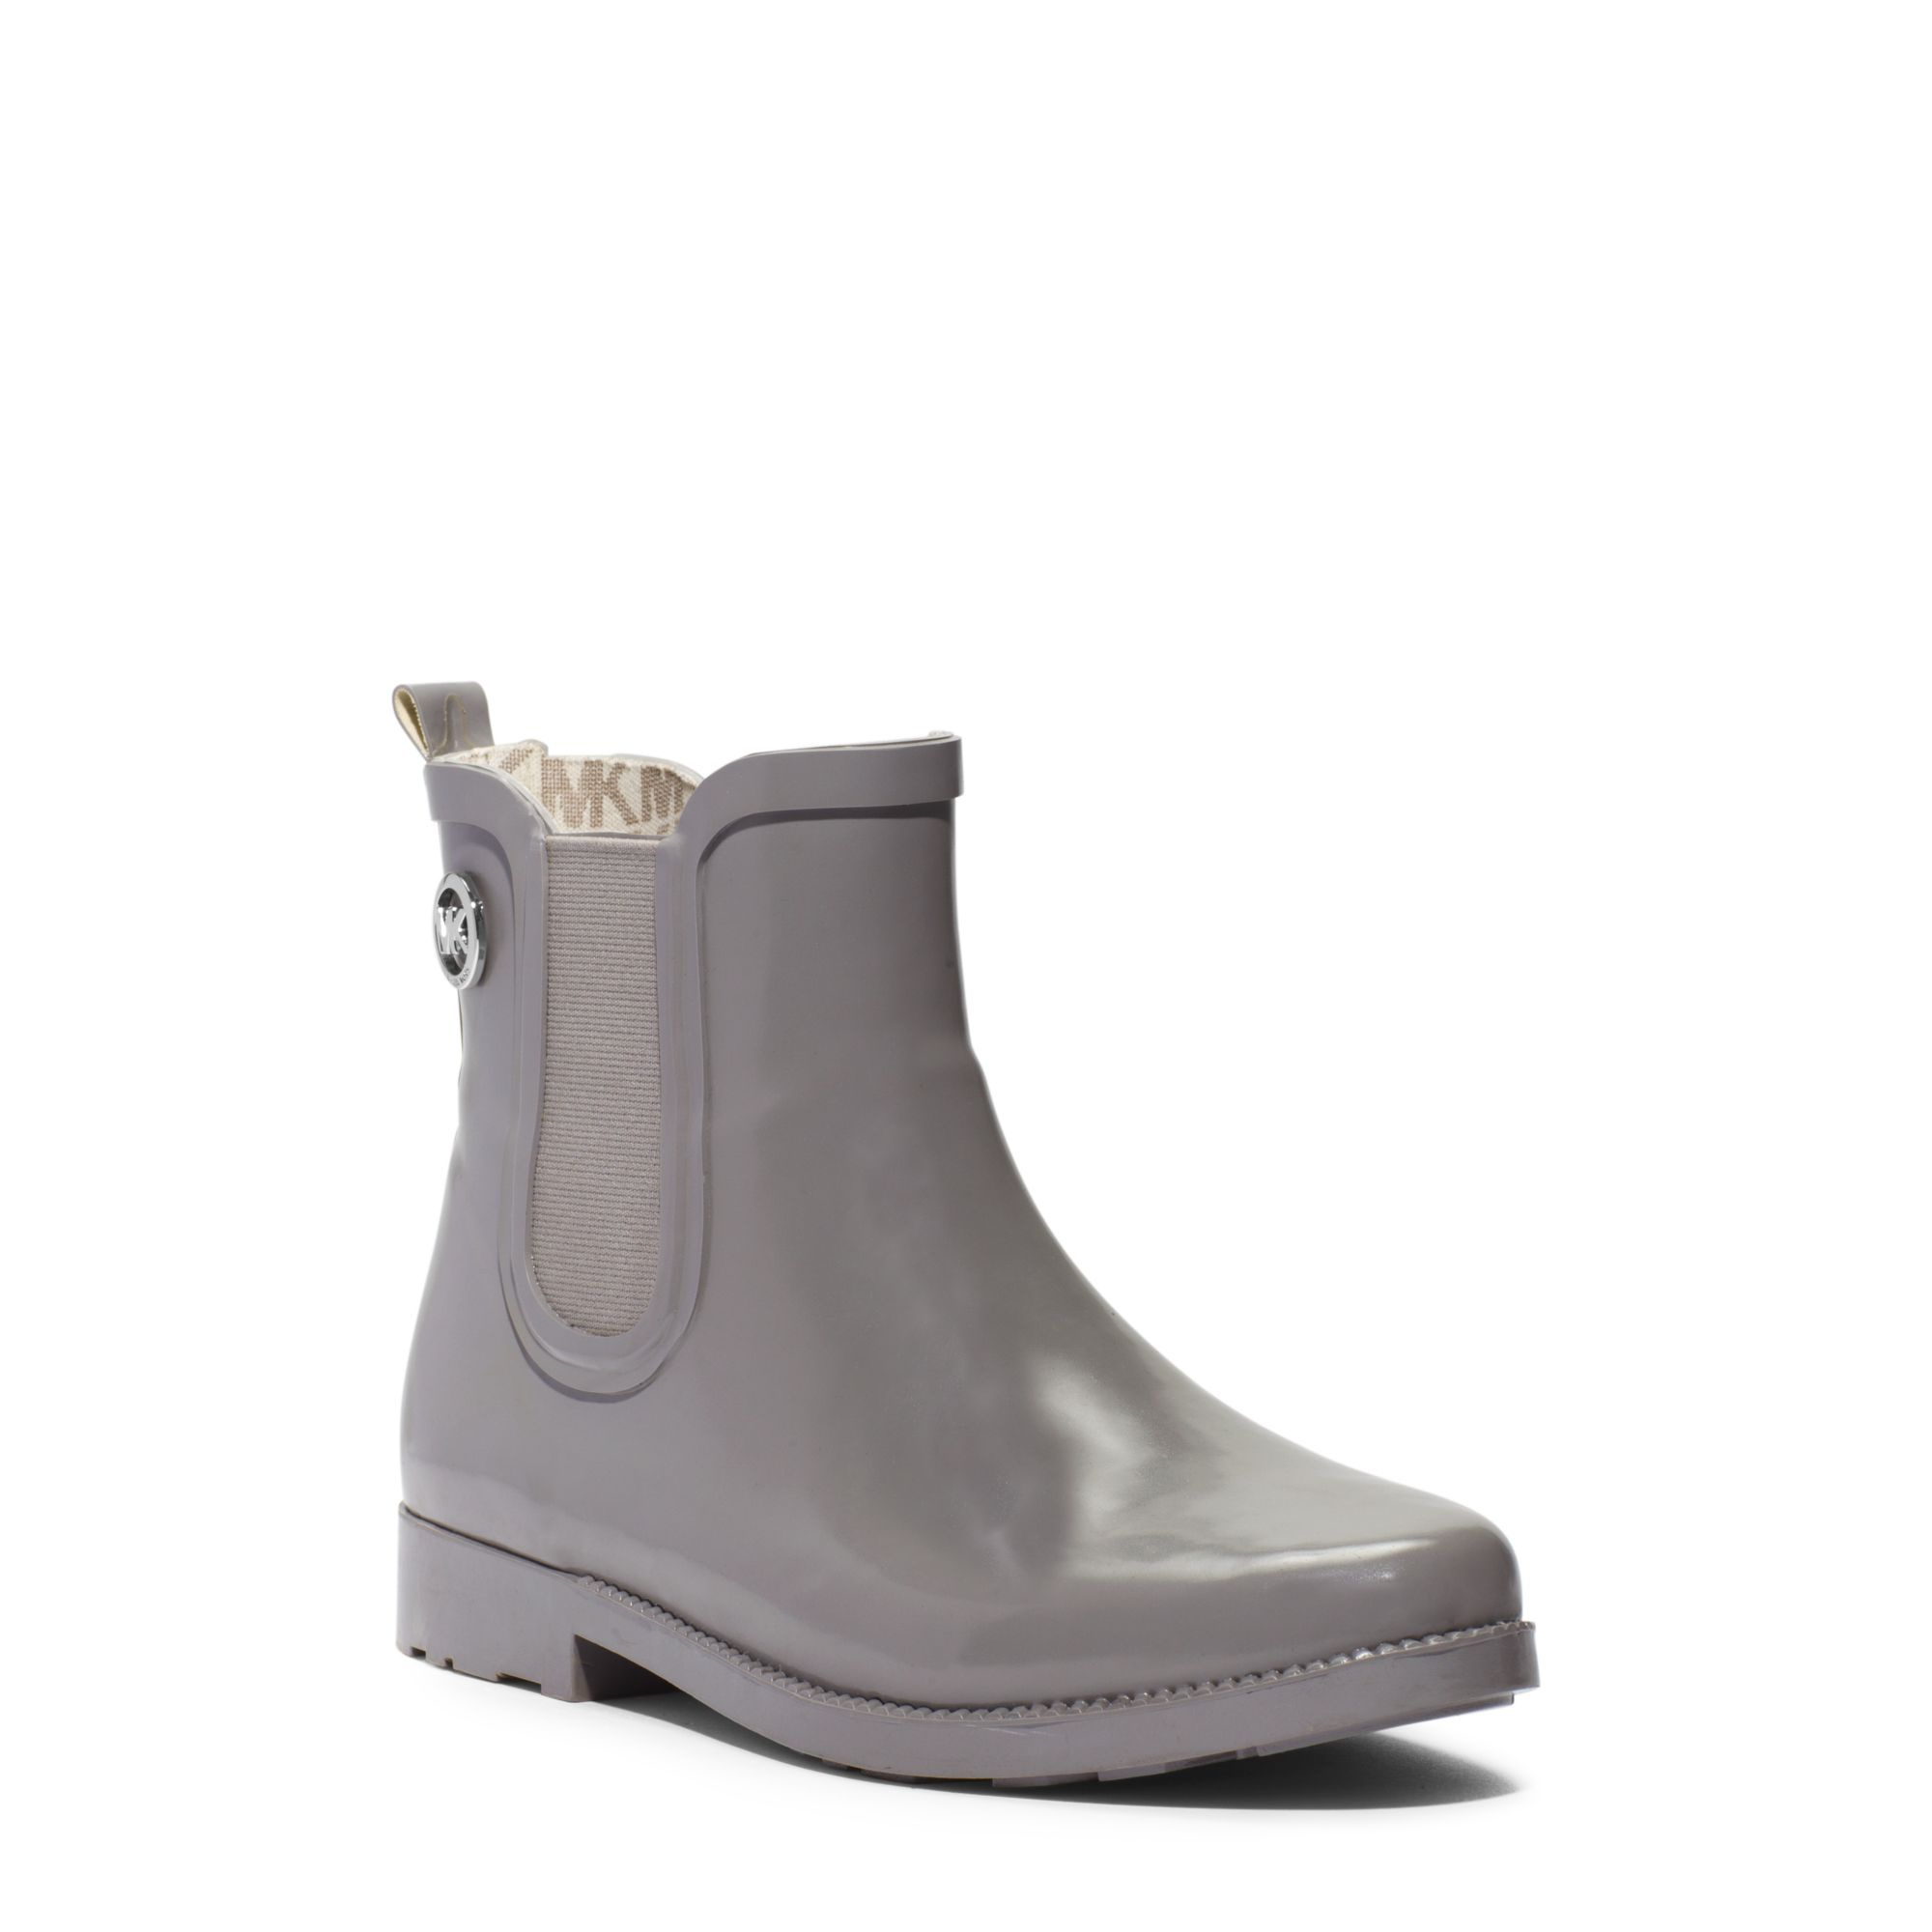 Michael kors Short Rubber Rain Boot in Gray for Men | Lyst